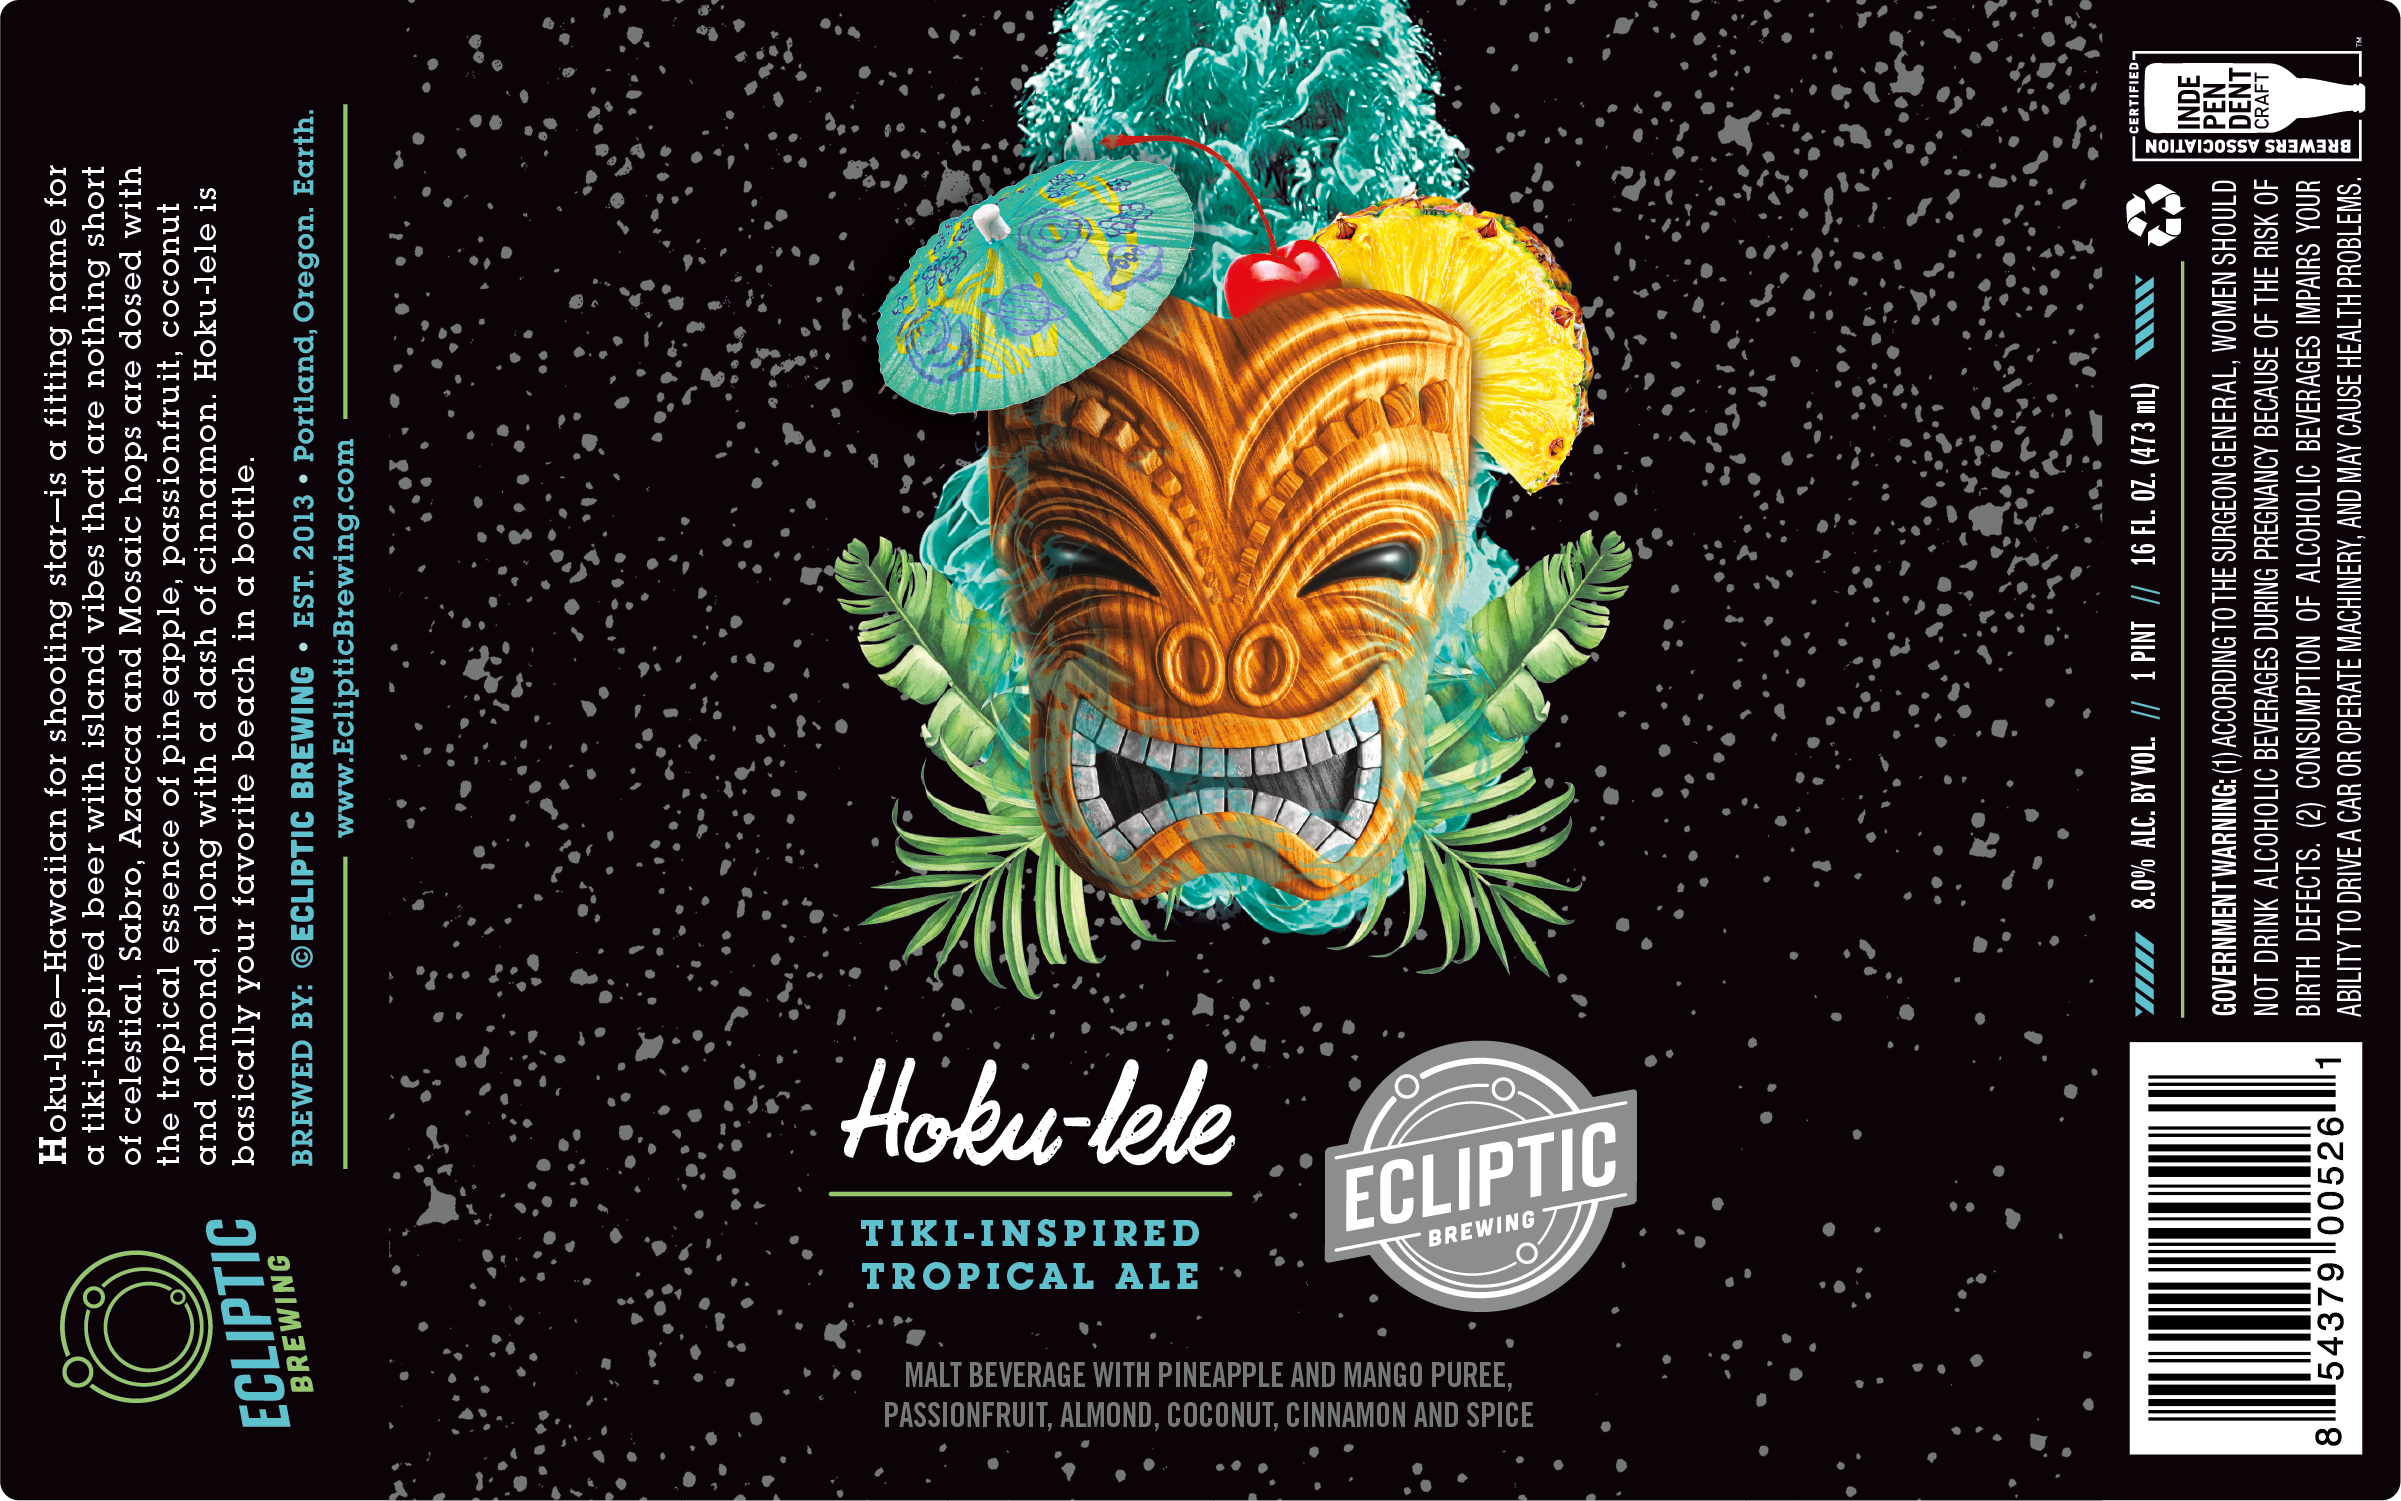 Ecliptic-Brewing-Hoku-lele-Tiki-Inspired-Tropical-Ale-Label